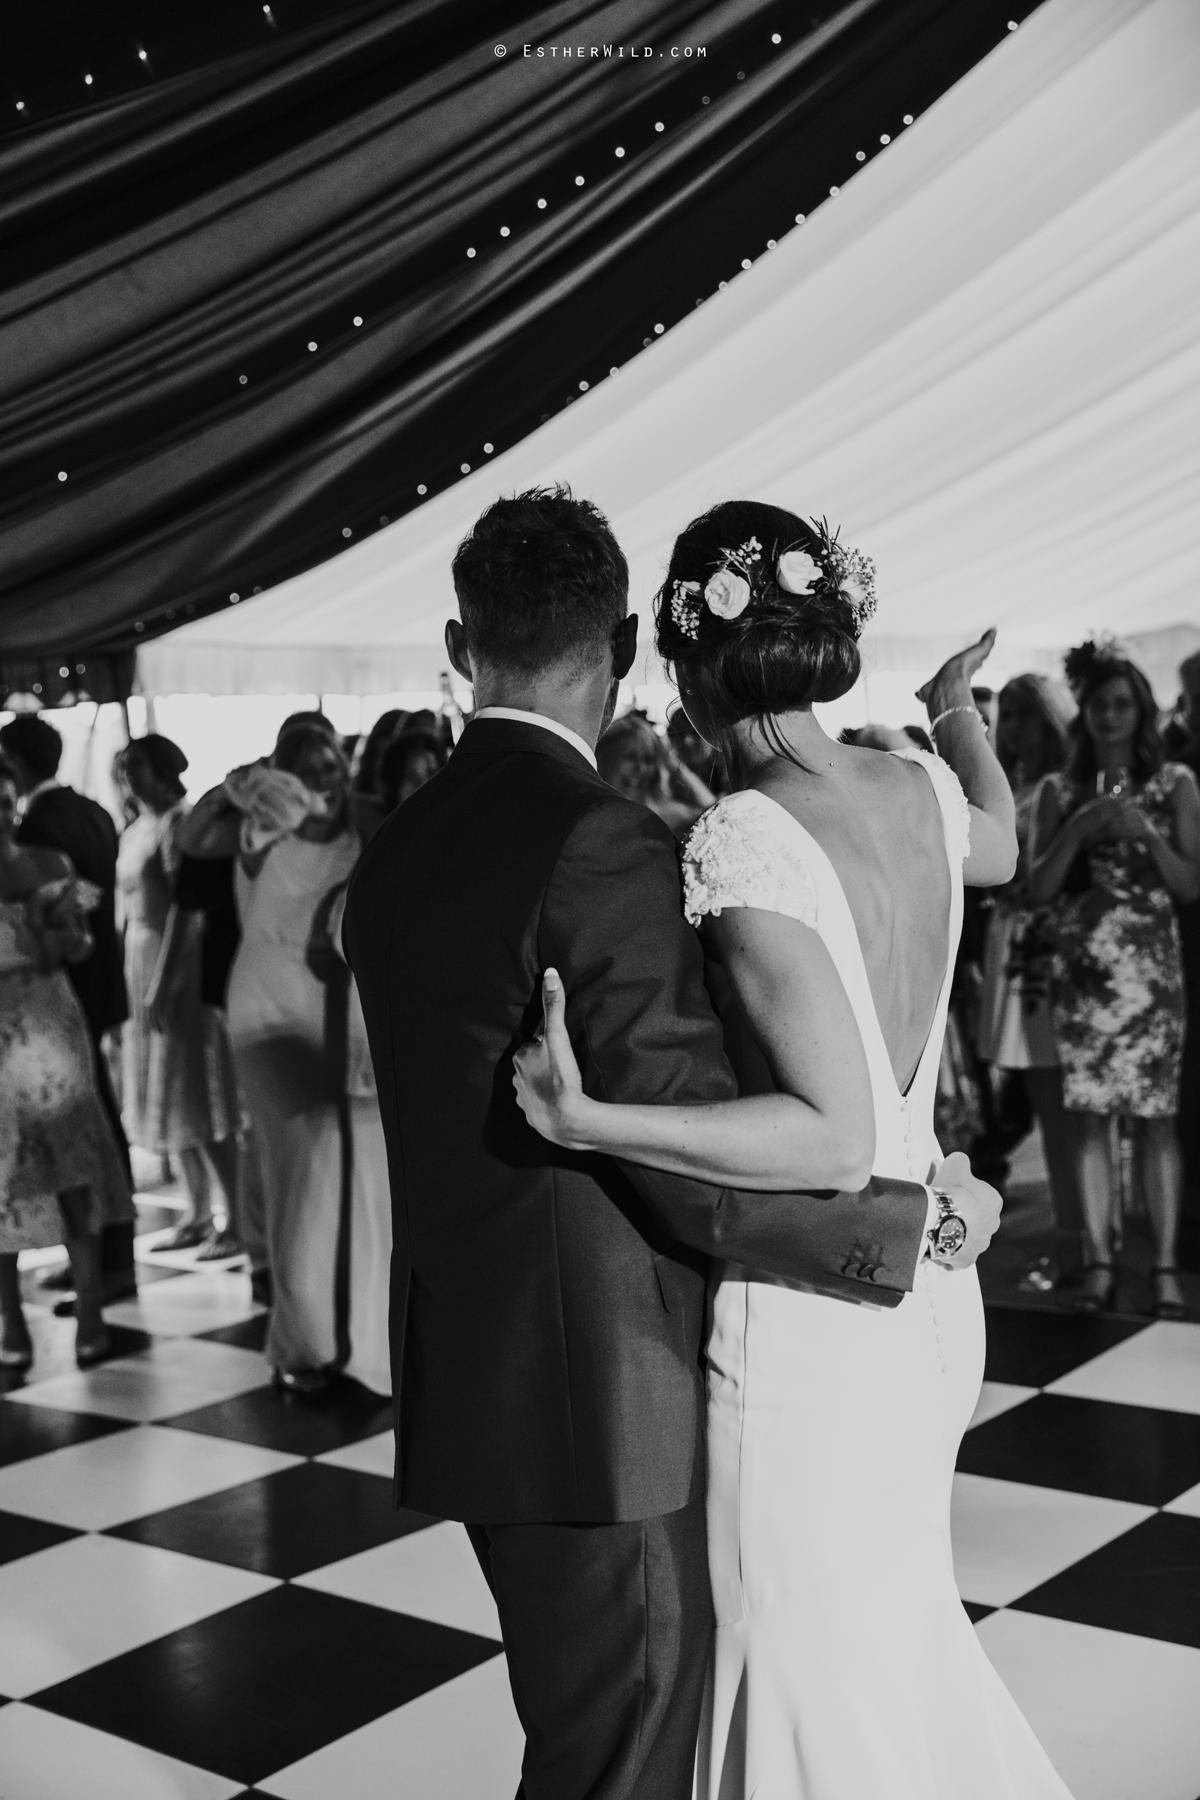 Wootton_Wedding_Copyright_Esther_Wild_Photographer_IMG_3264.jpg